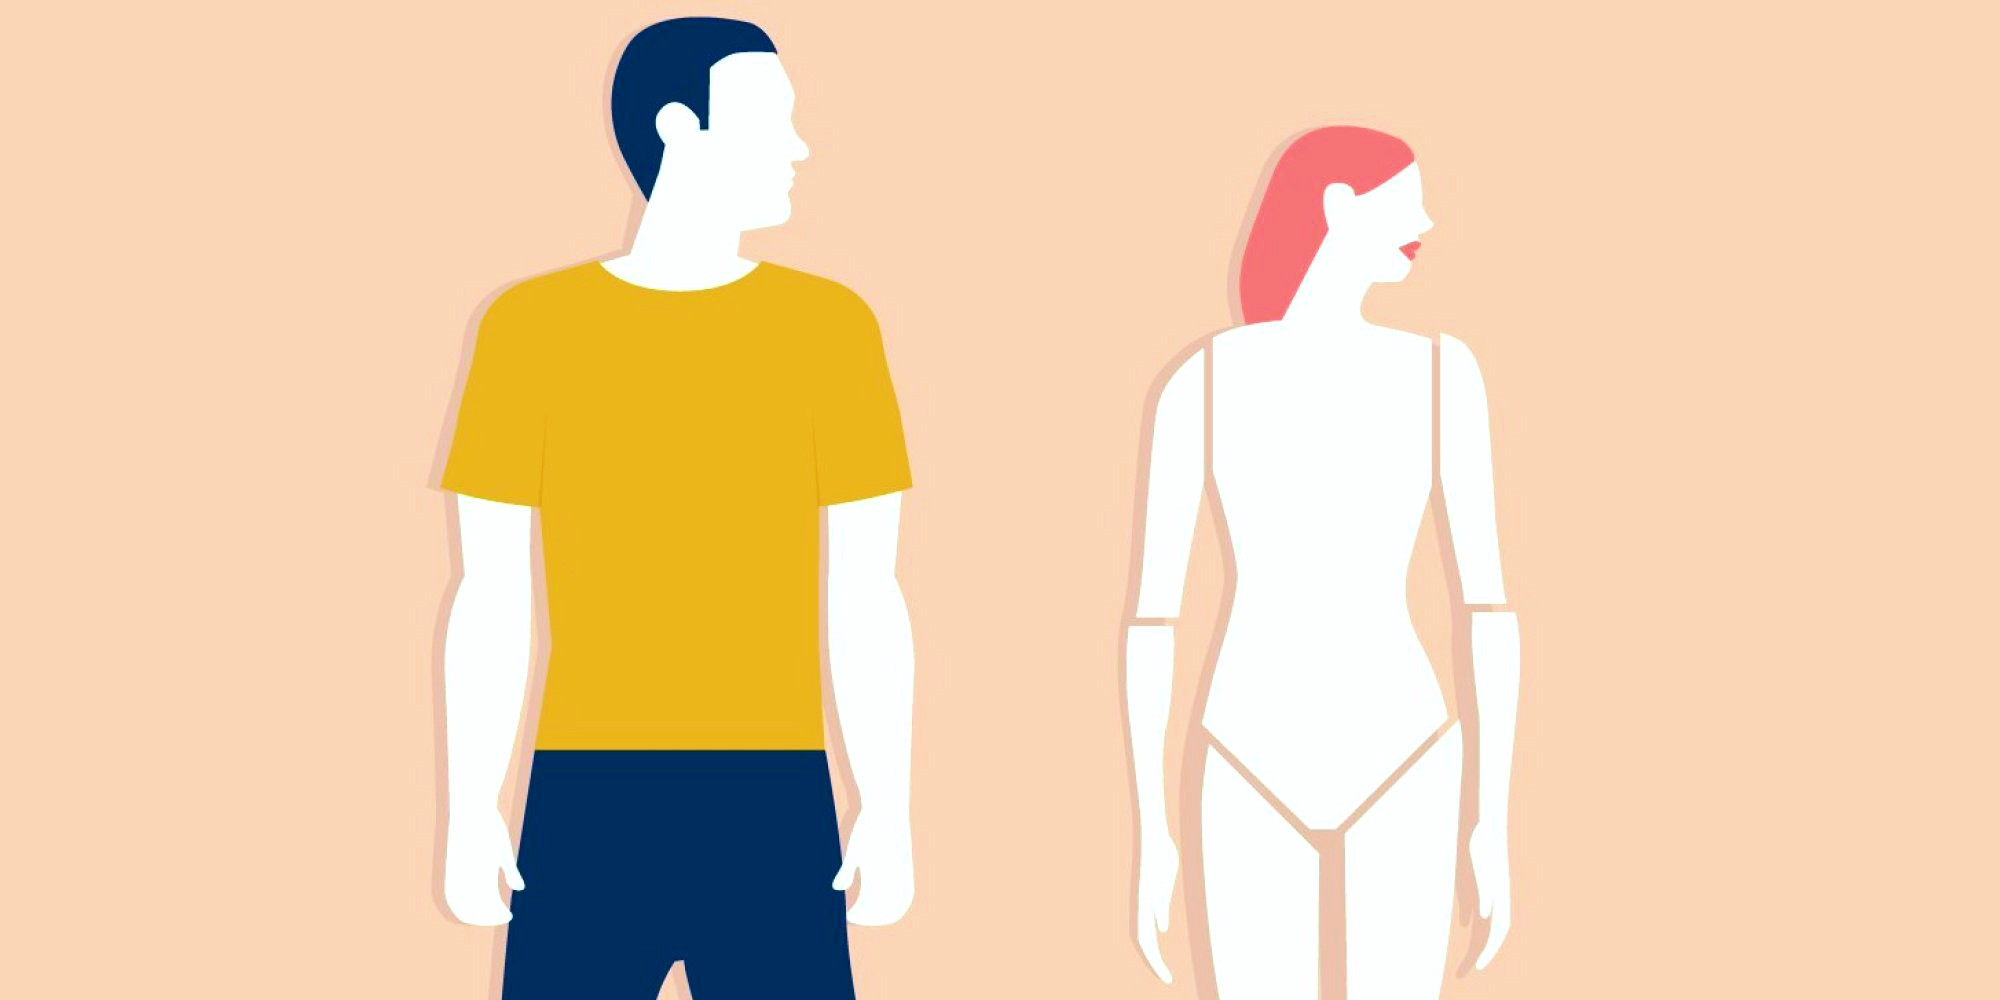 Image features a masculine presenting person wearing a yellow shirt and blue shorts standing next to a feminine presenting person meant to be a woman wearing no clothing with doll-like joints on her hips and elbows.